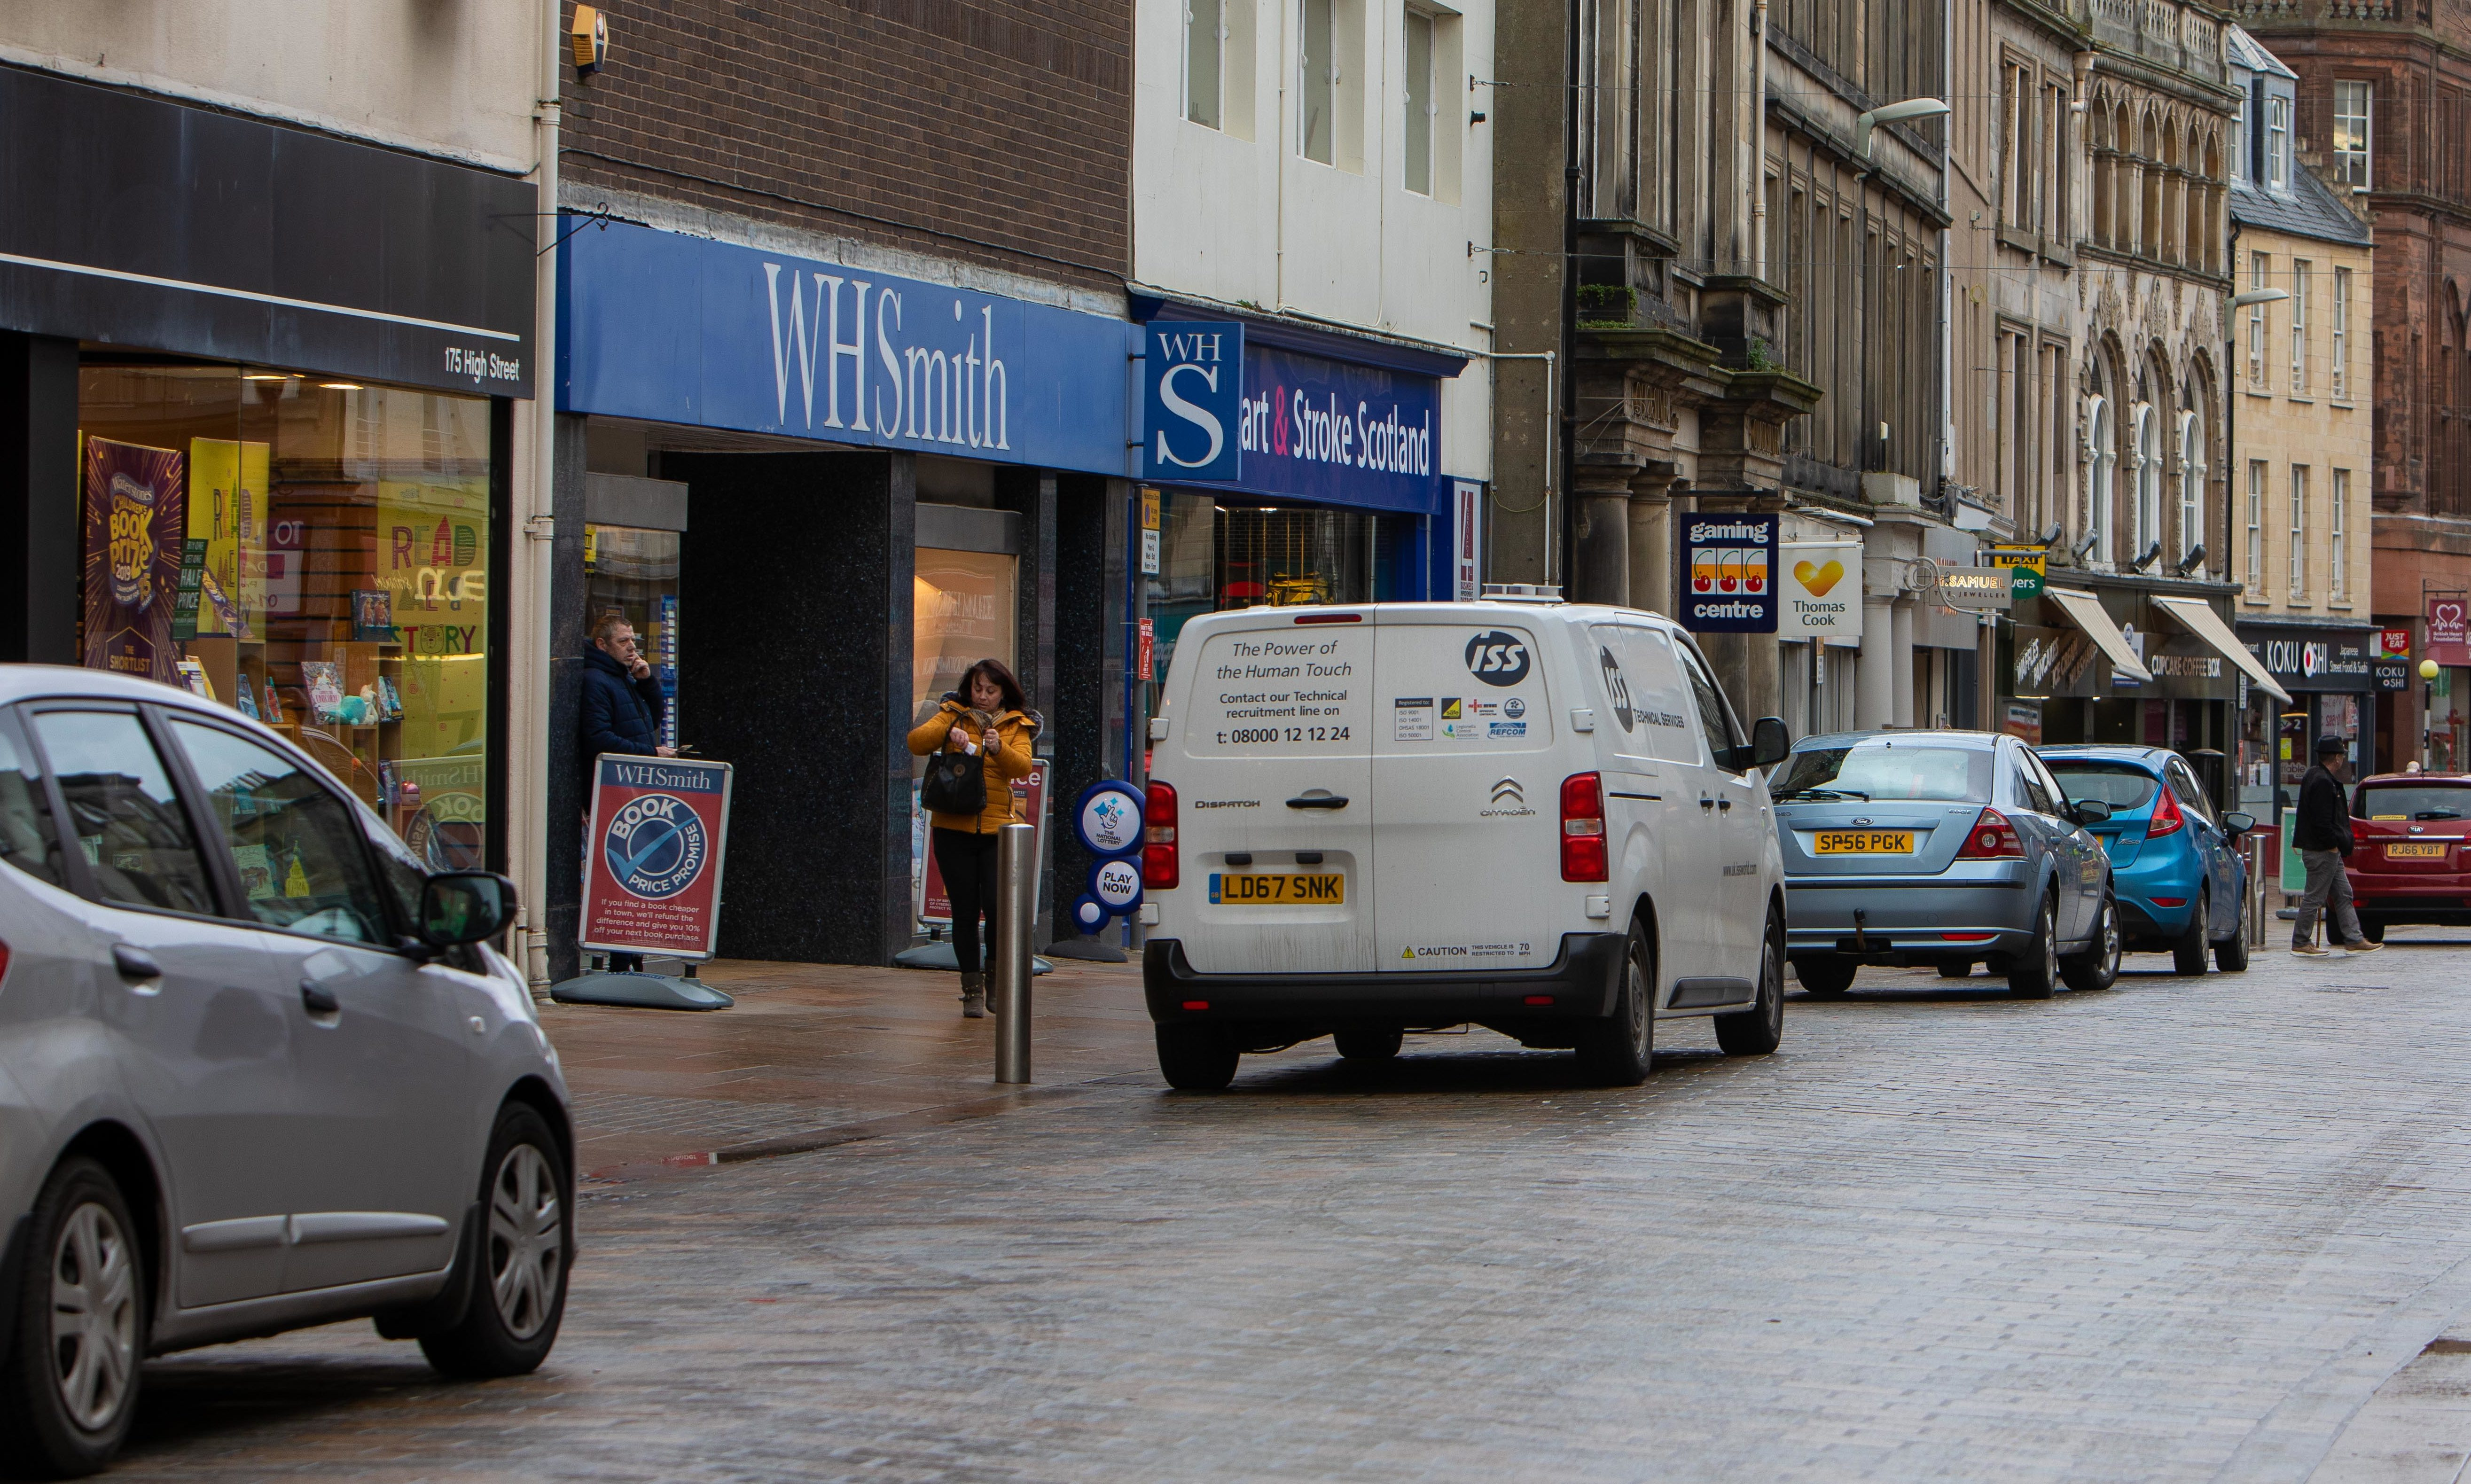 WH Smith onf Kirkcaldy High Street.